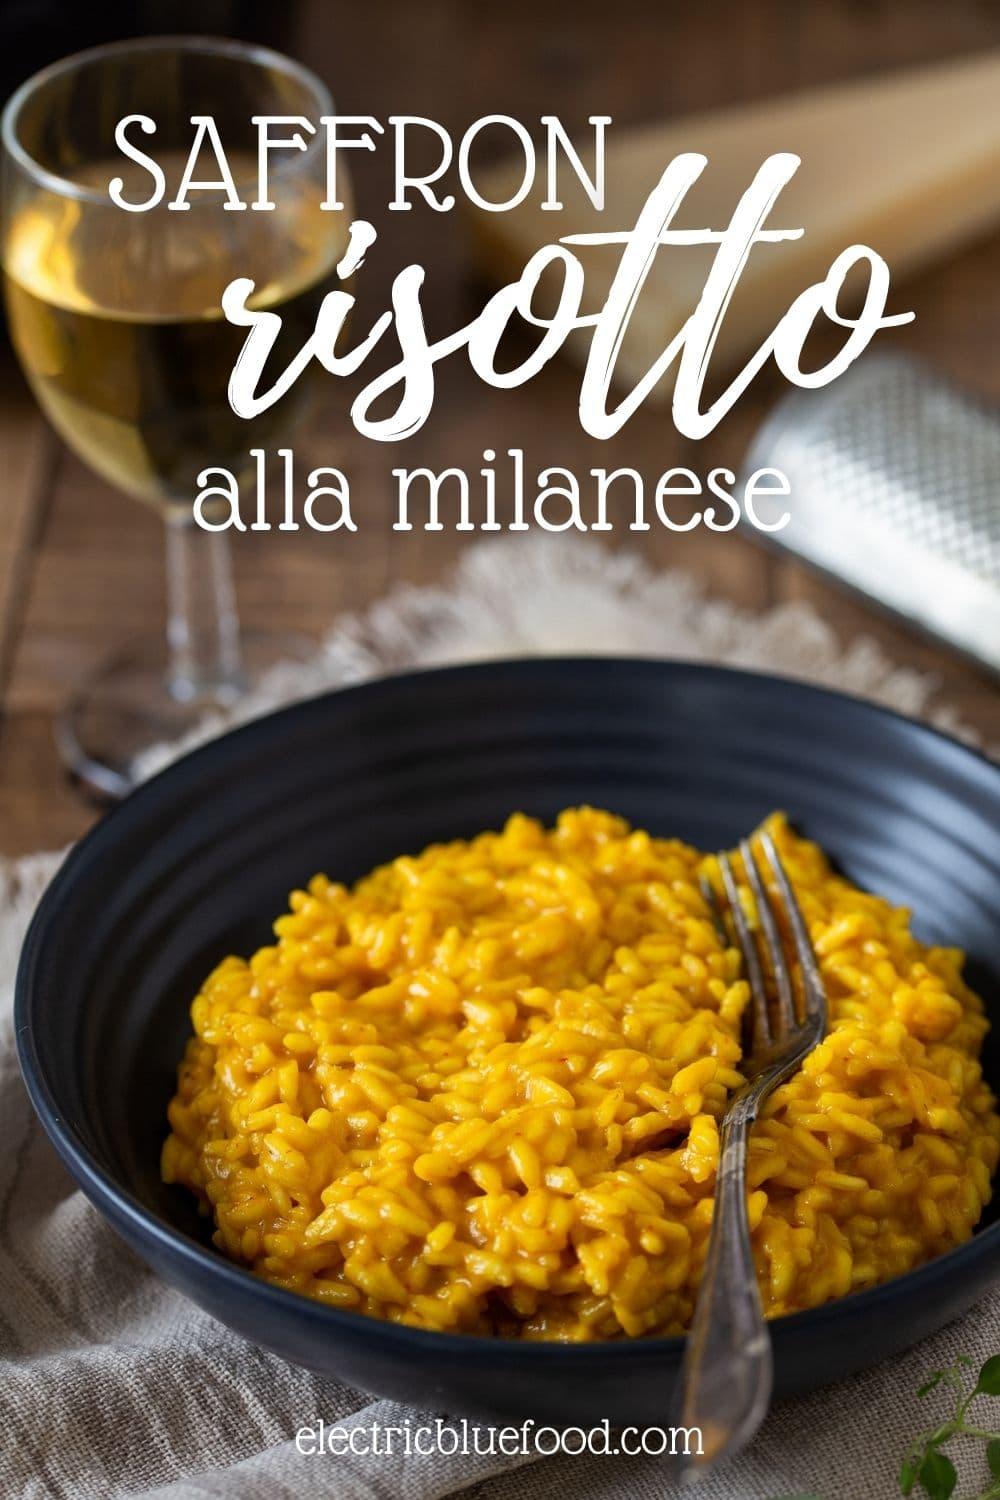 Authentic saffron risotto alla milanese with saffron, parmesan and beef broth. A traditional recipe from northern Italy for a flavourful main course or side.